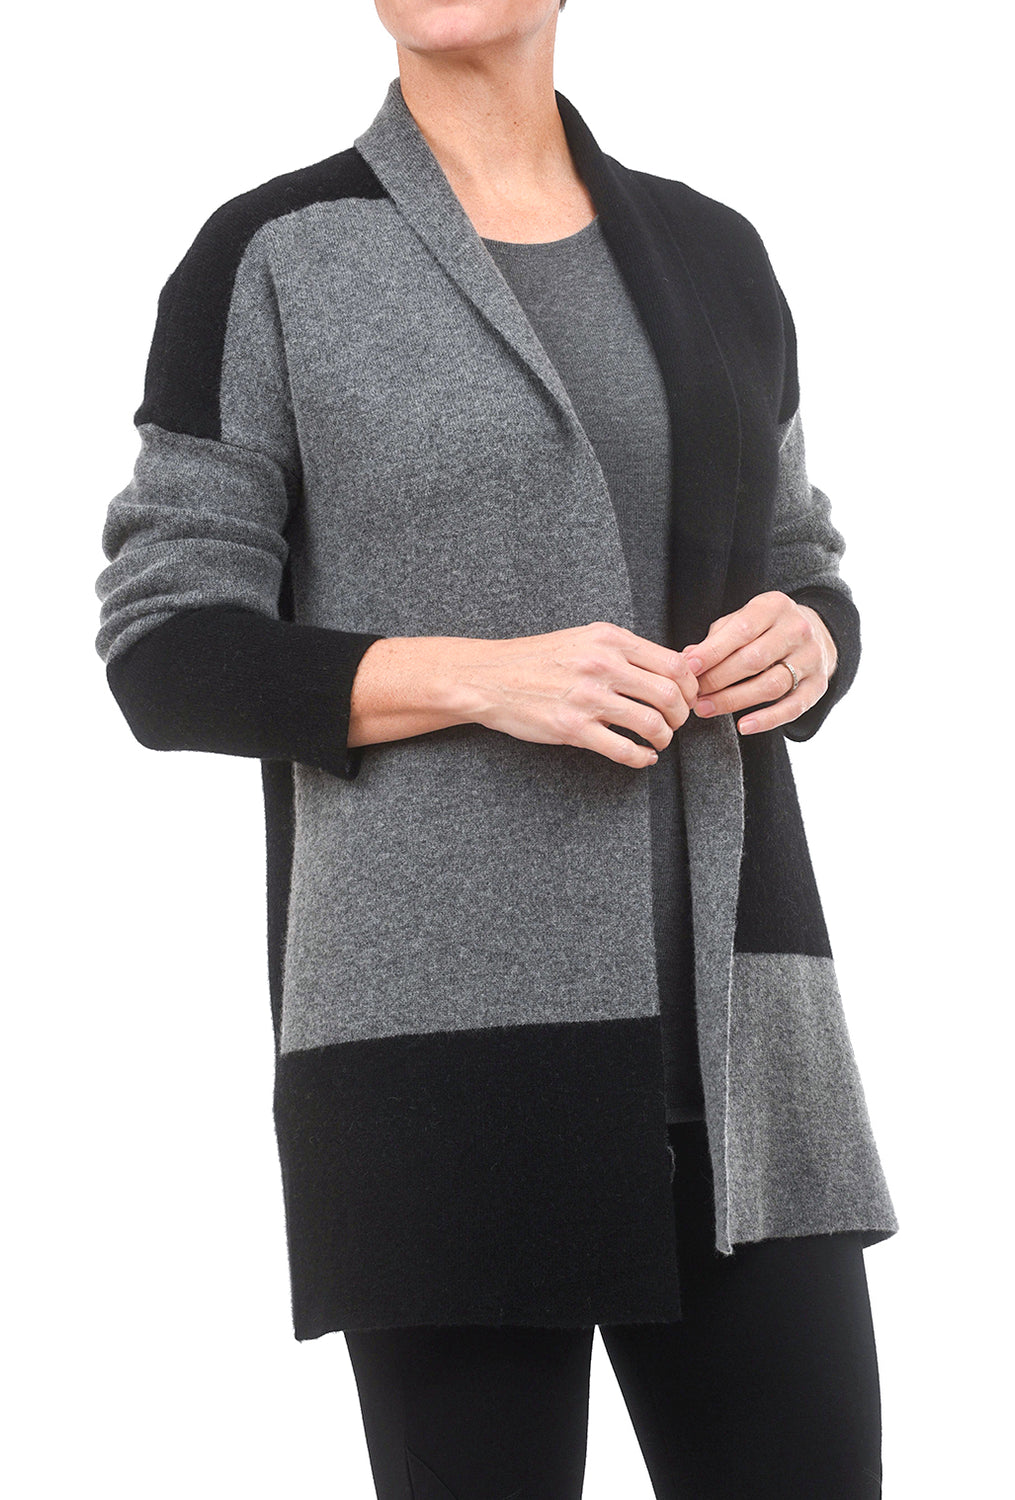 Kokun Colorblock Double-Faced Cardie, Charcoal/Black